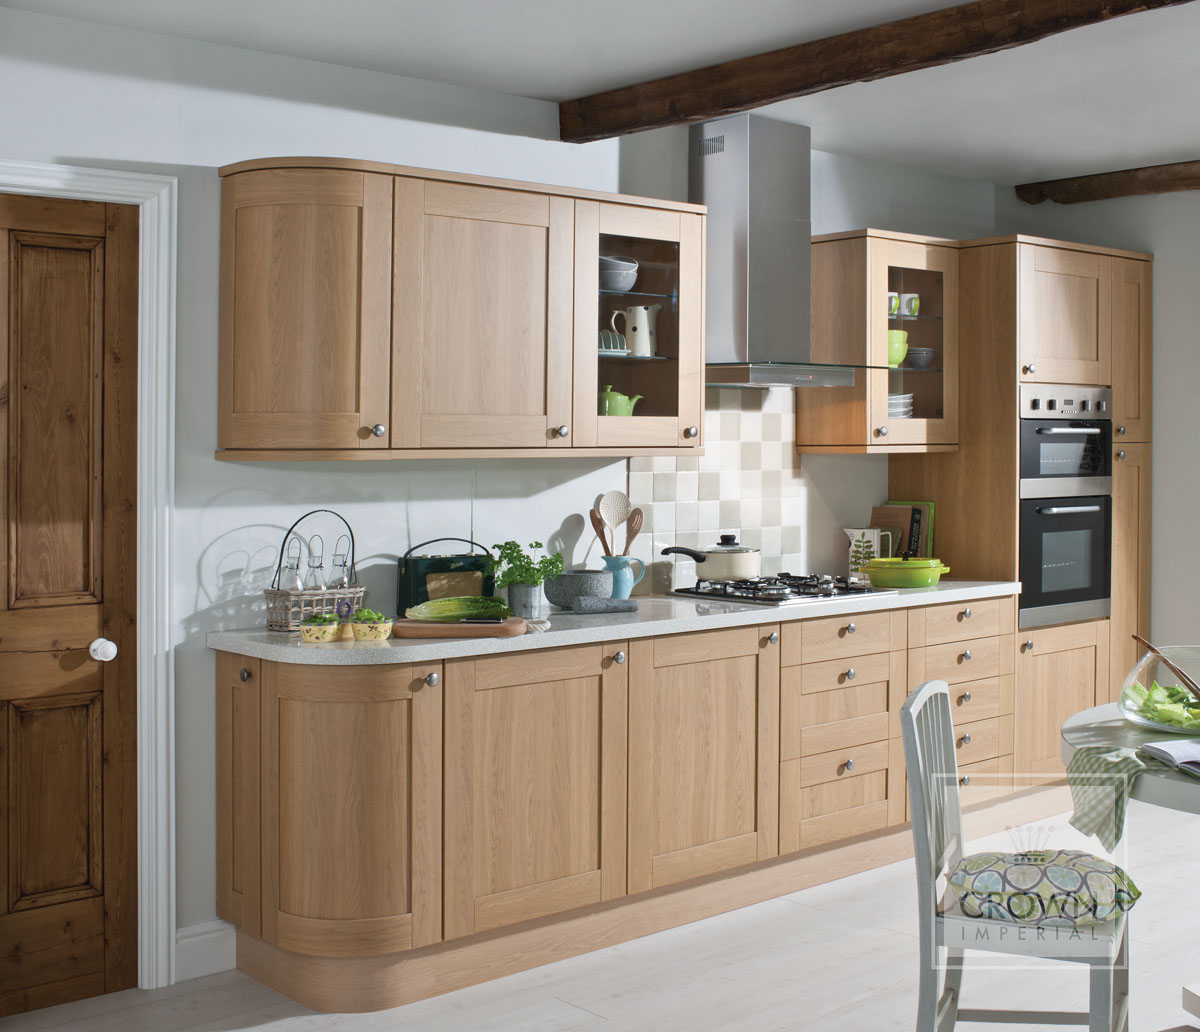 Three top tips for small kitchen design for Short kitchen design